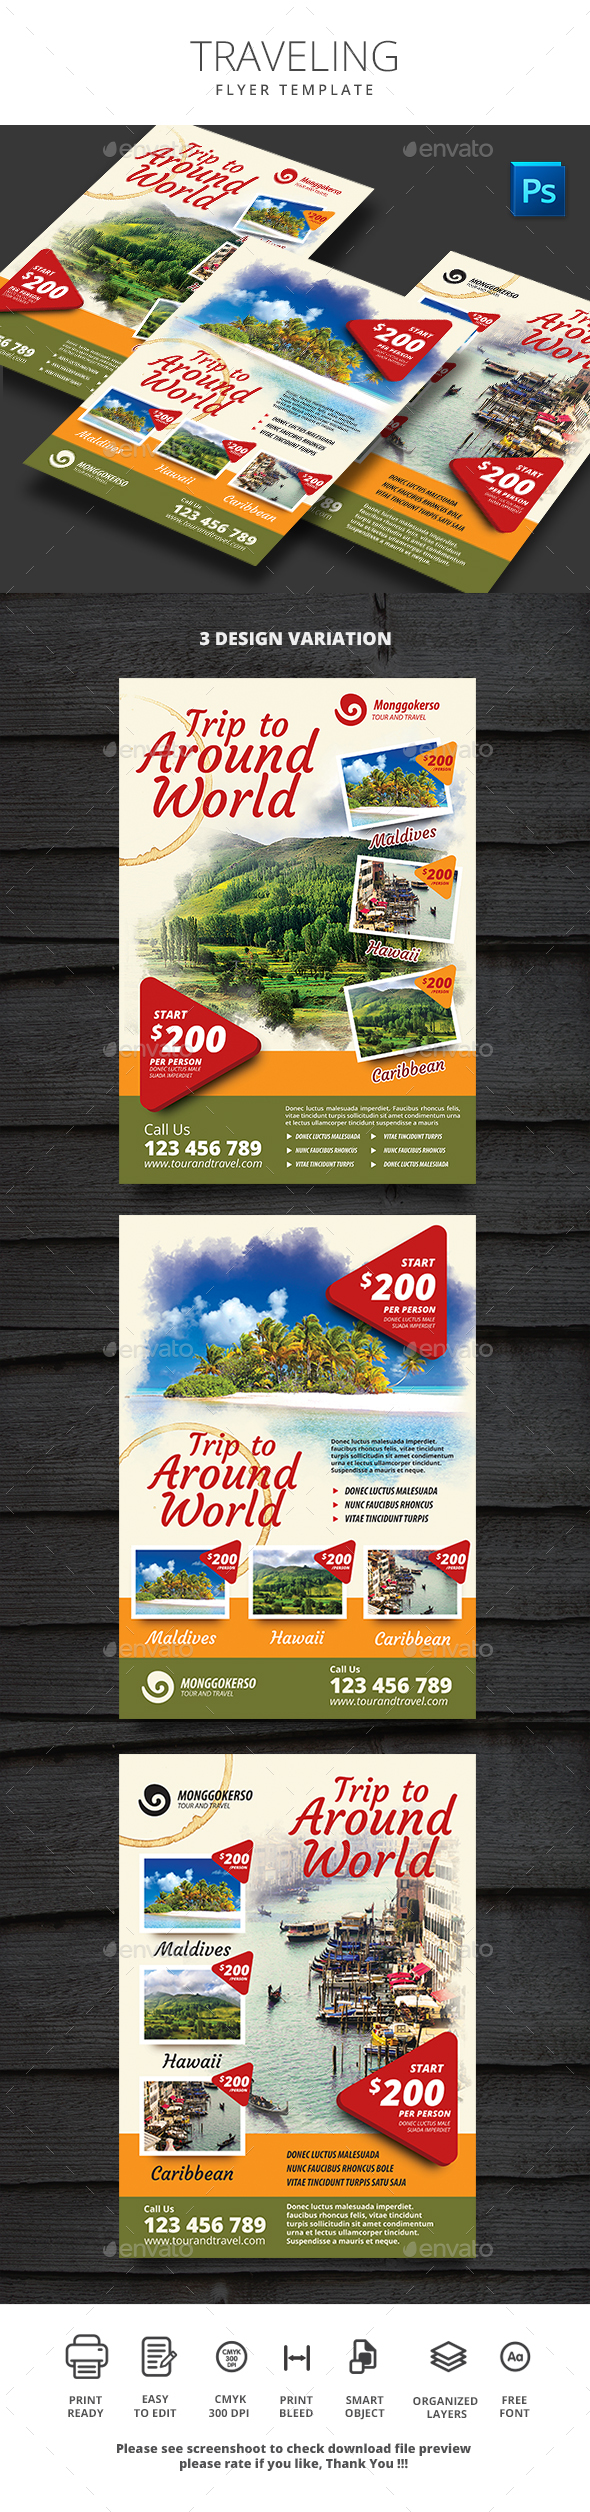 Traveling - Flyers Print Templates